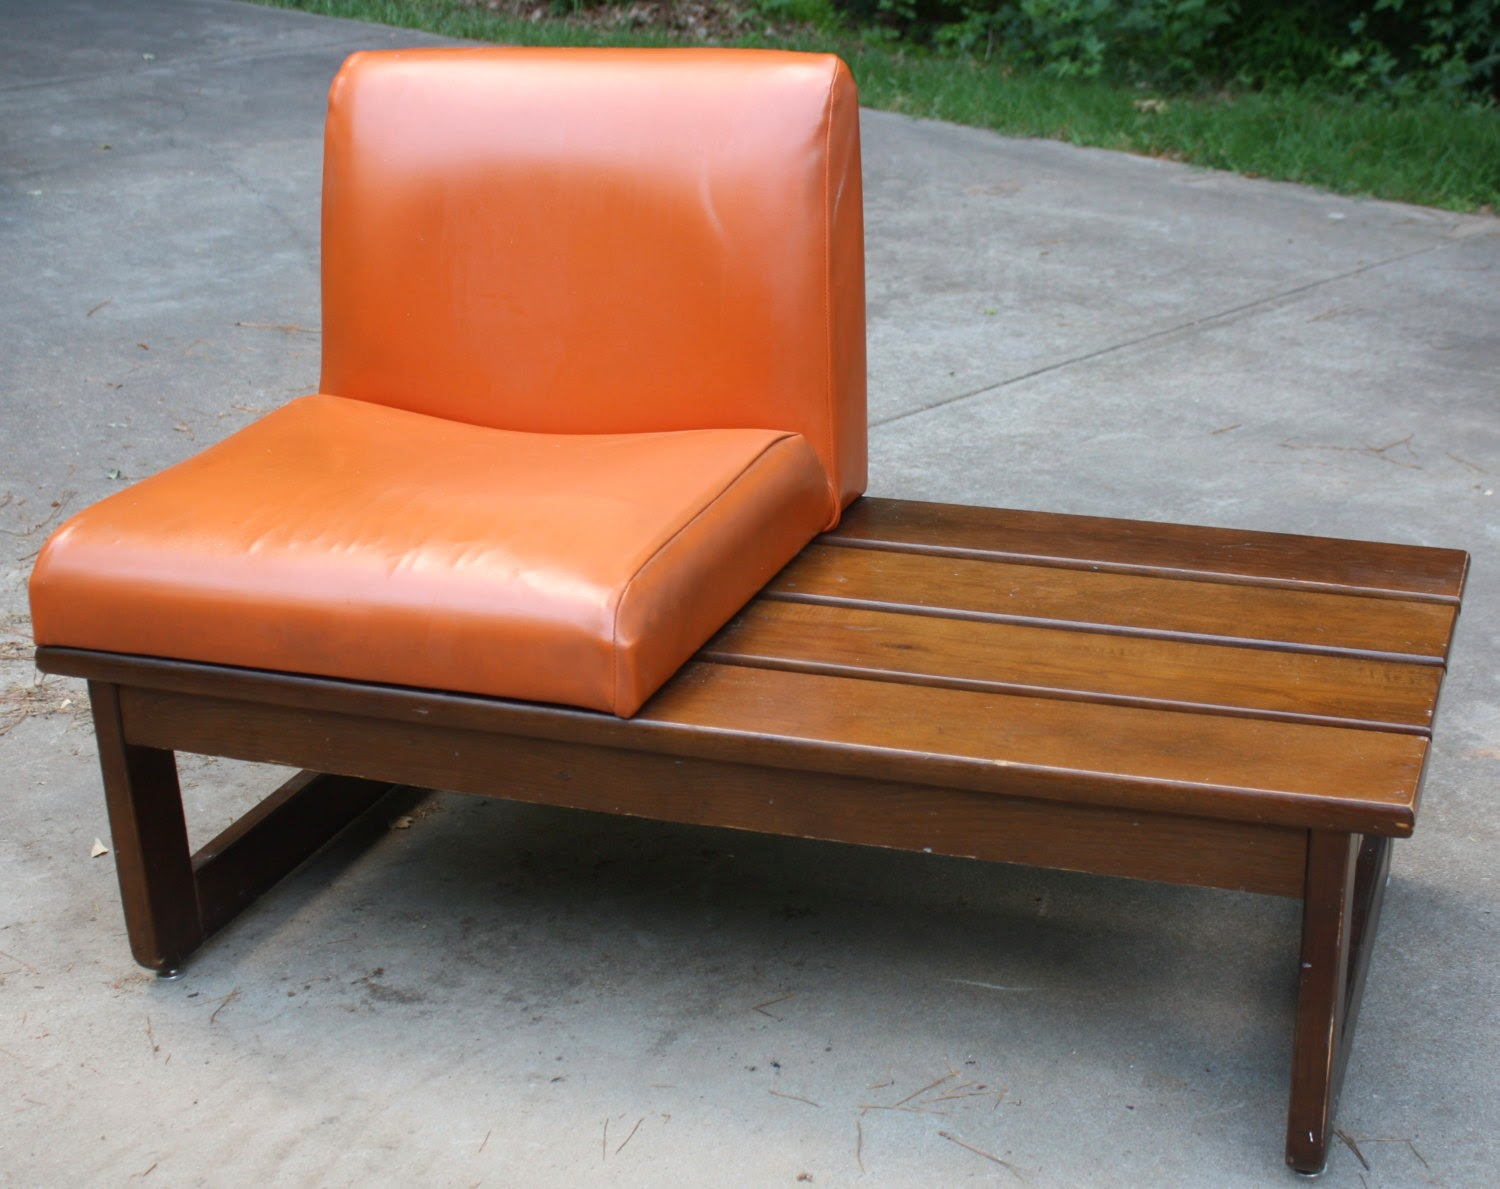 https://www.etsy.com/listing/160141125/retro-slatted-wood-bench-with-orange